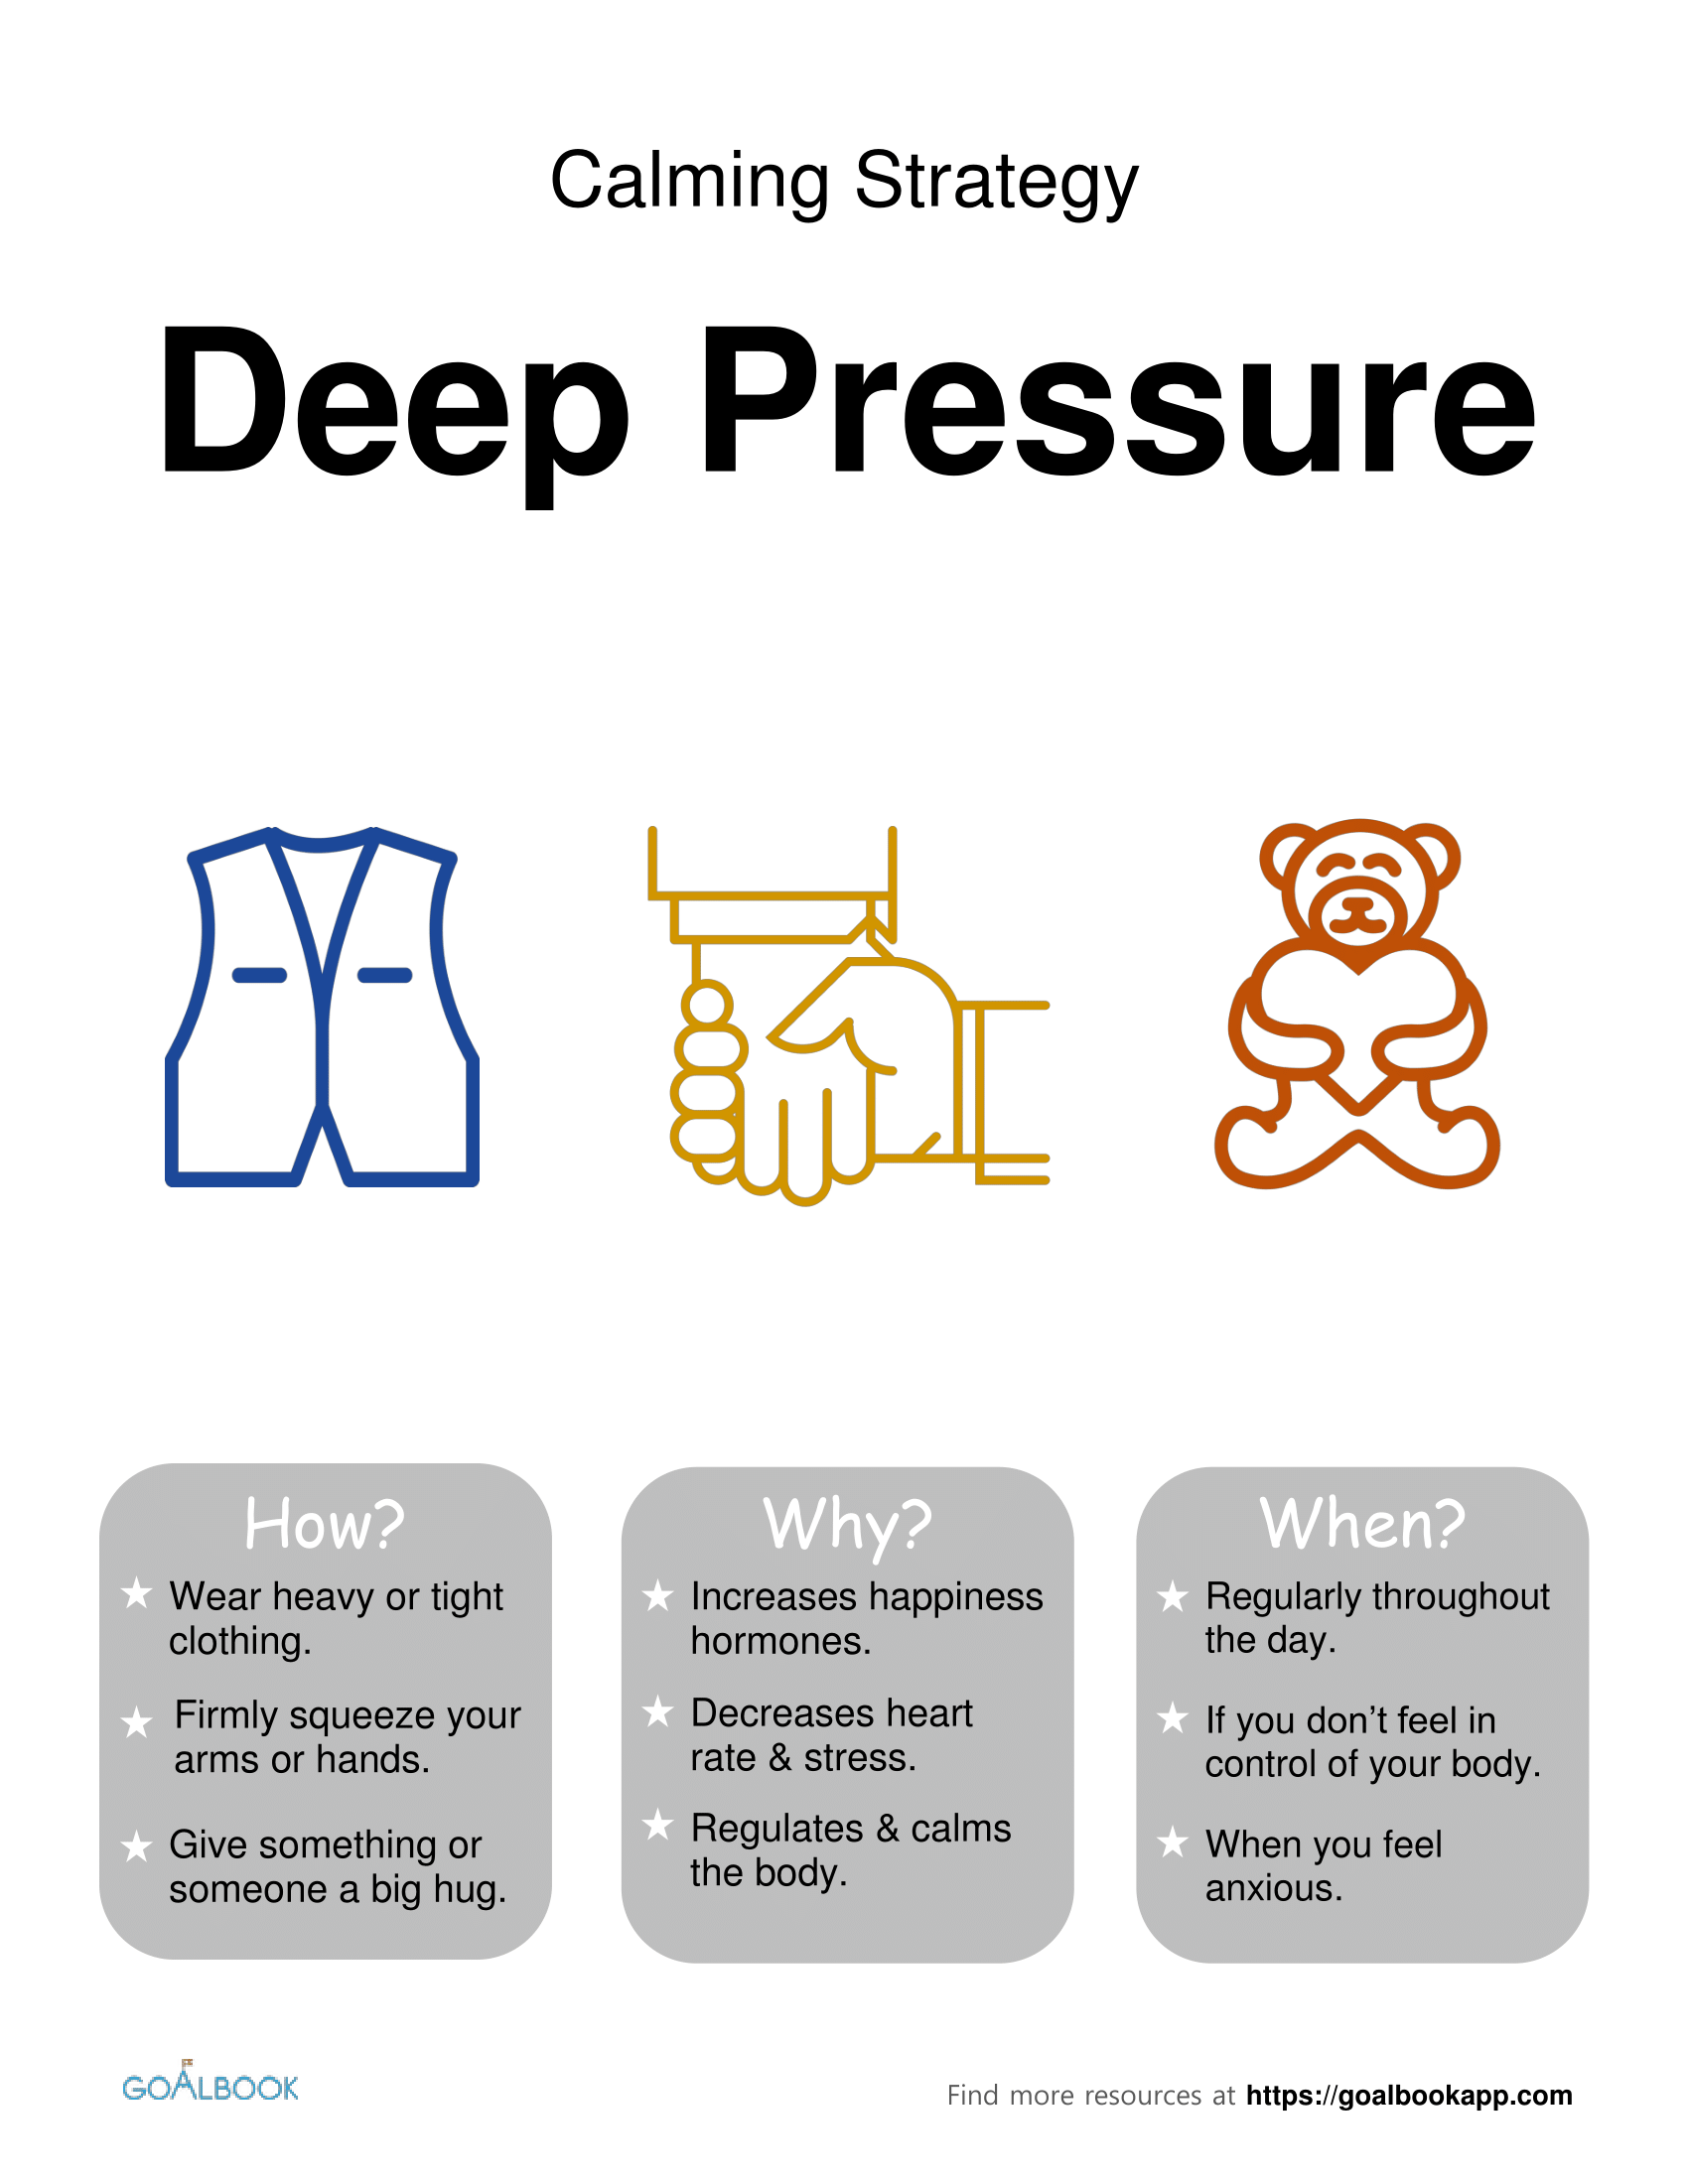 Deep Pressure: Calming Strategy